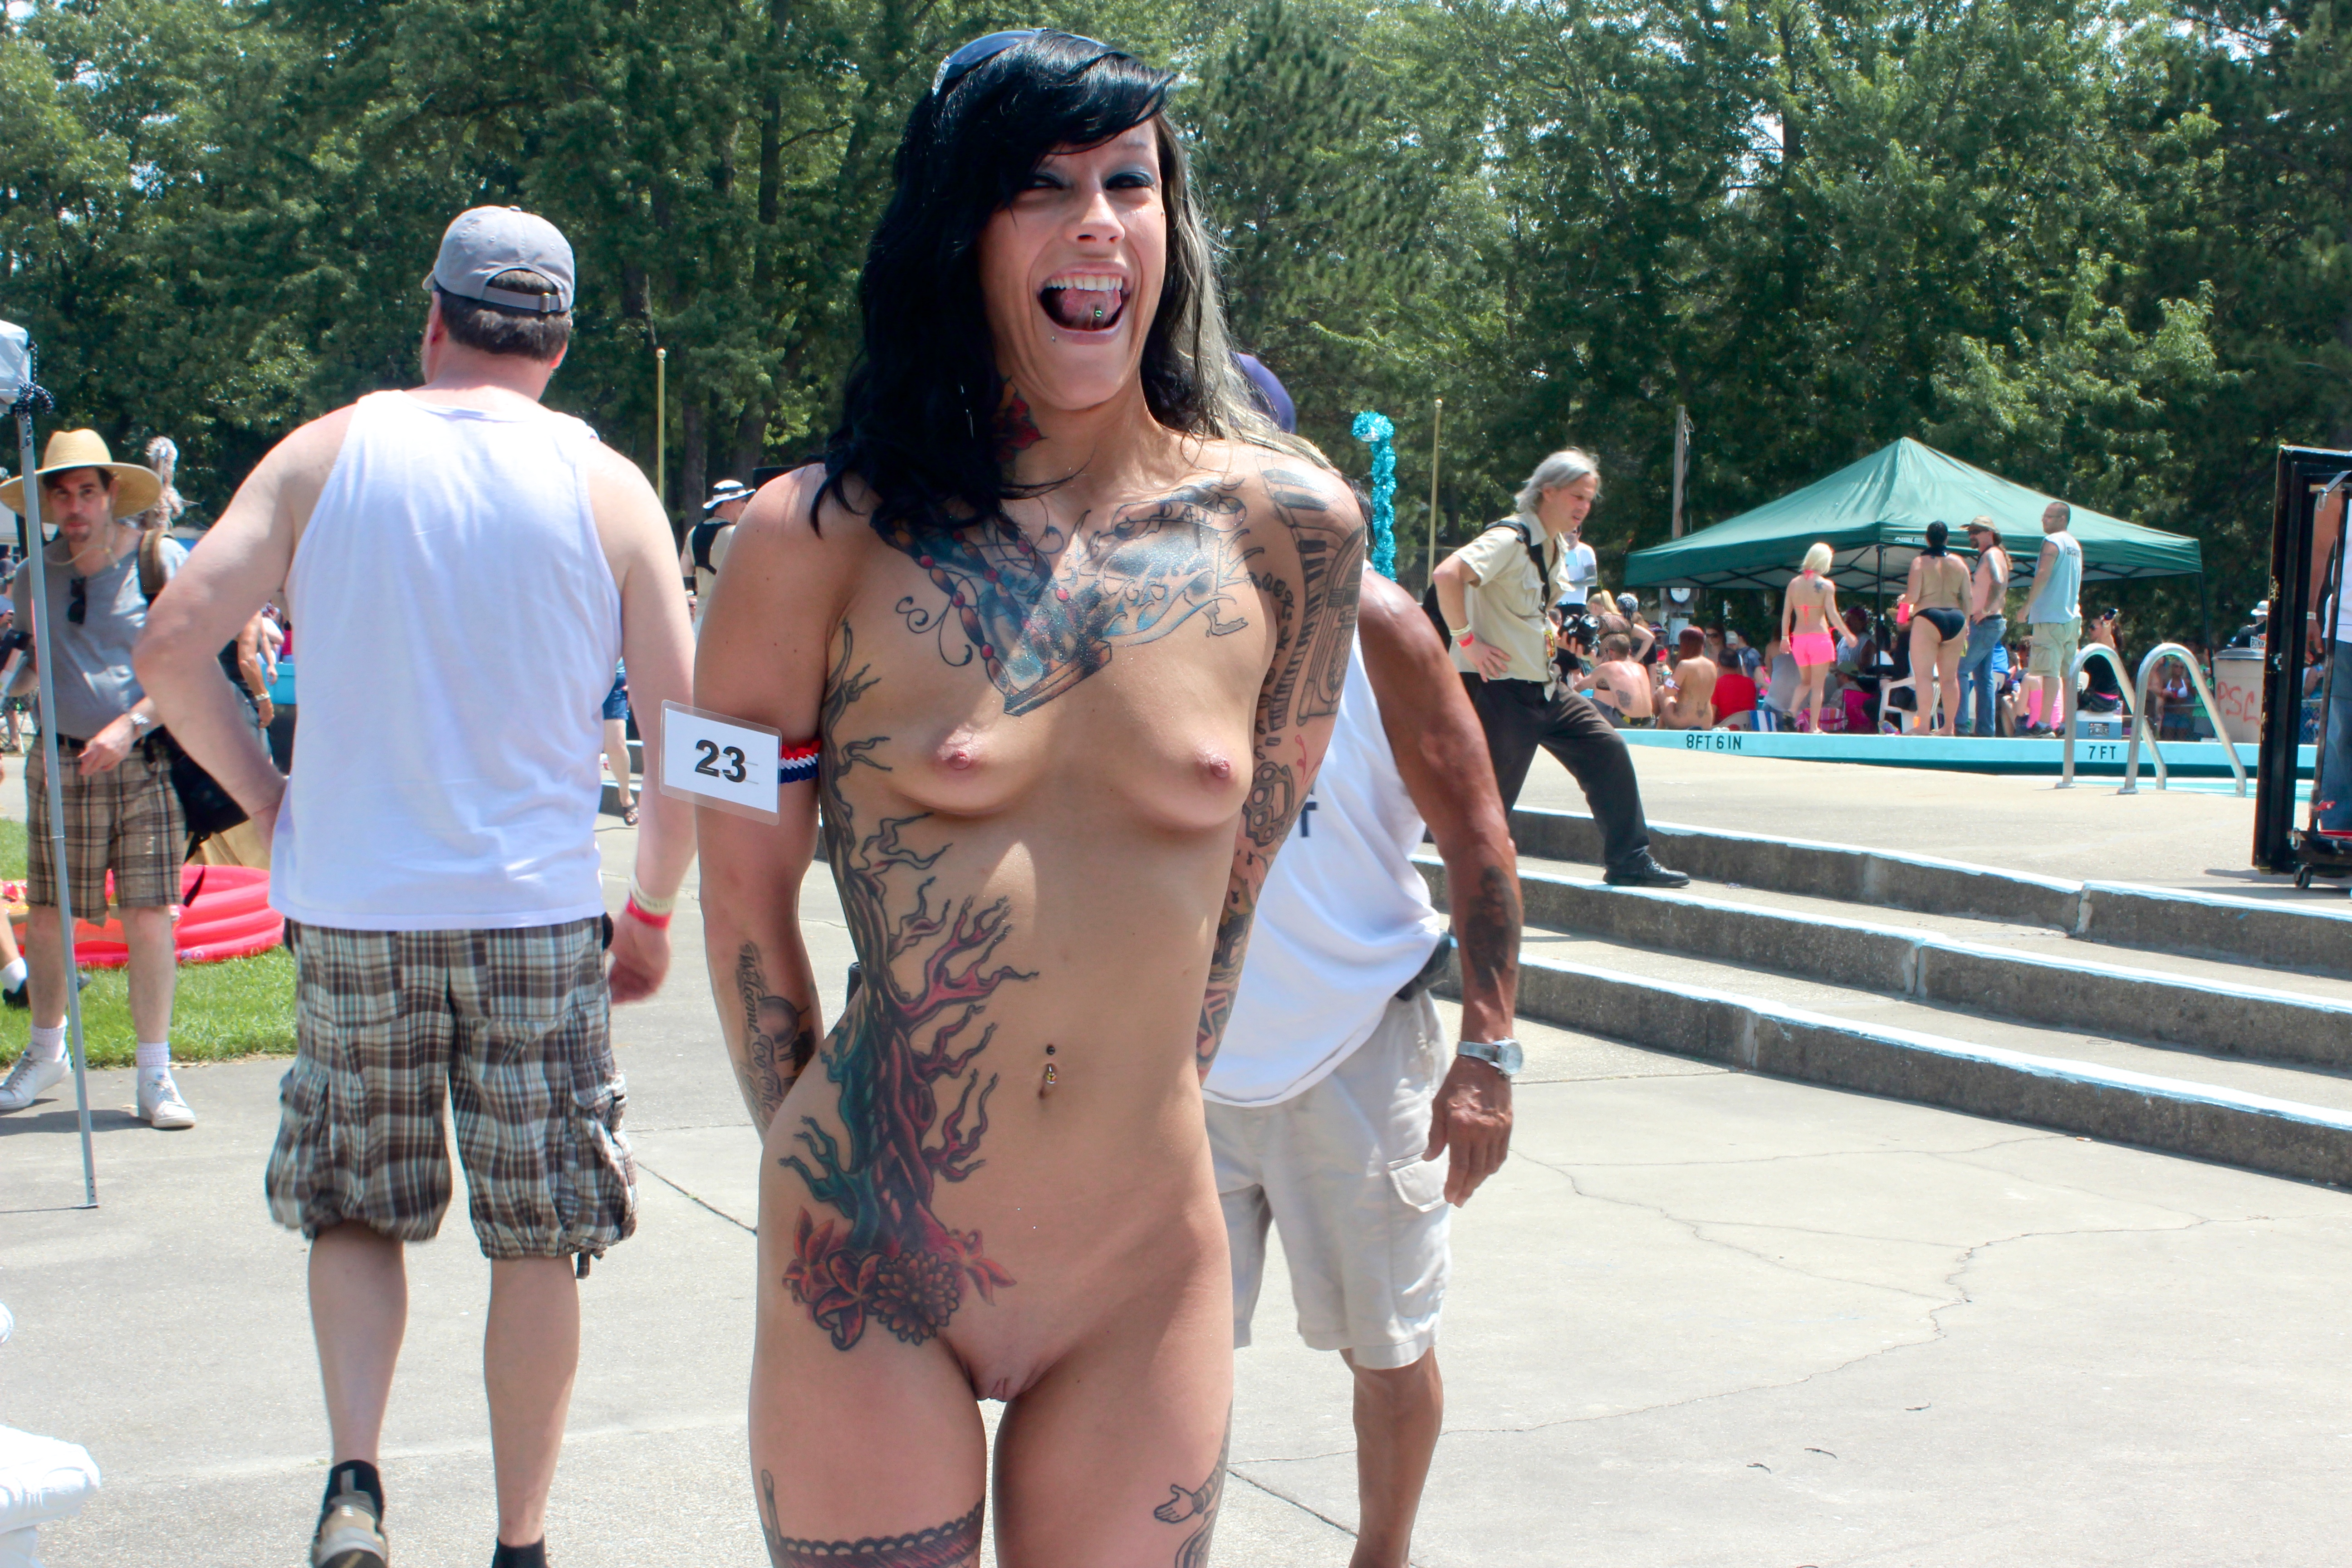 from Malakai free naked tattooed girls